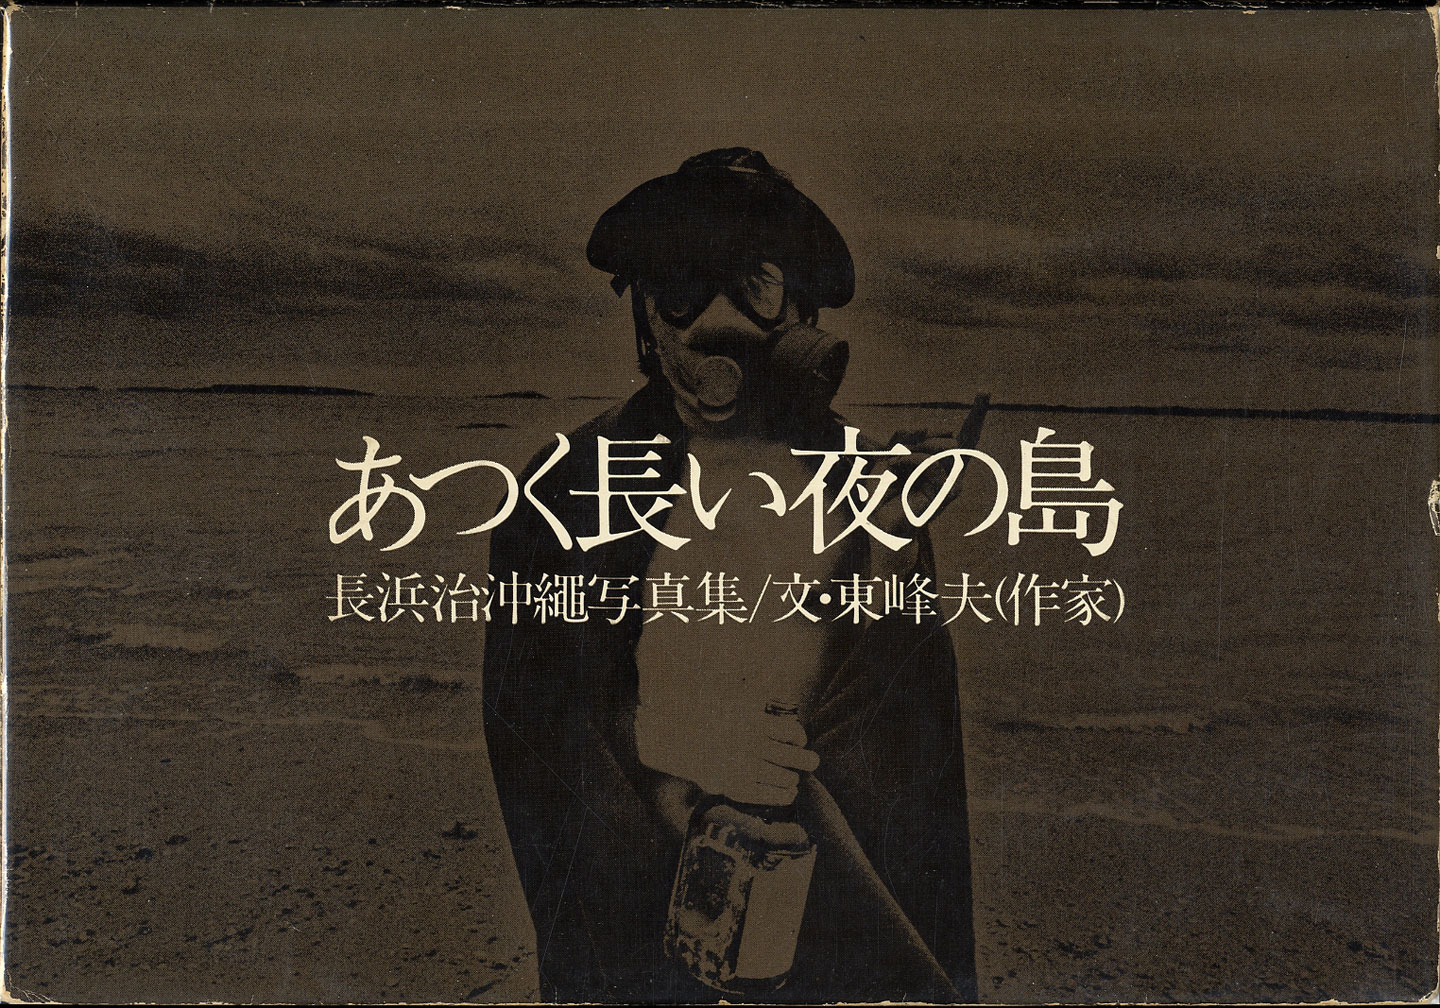 Osamu Nagahama: Atsuku Nagai Yoru no Shima (The Island of Long Hot Night) (lacking obi)